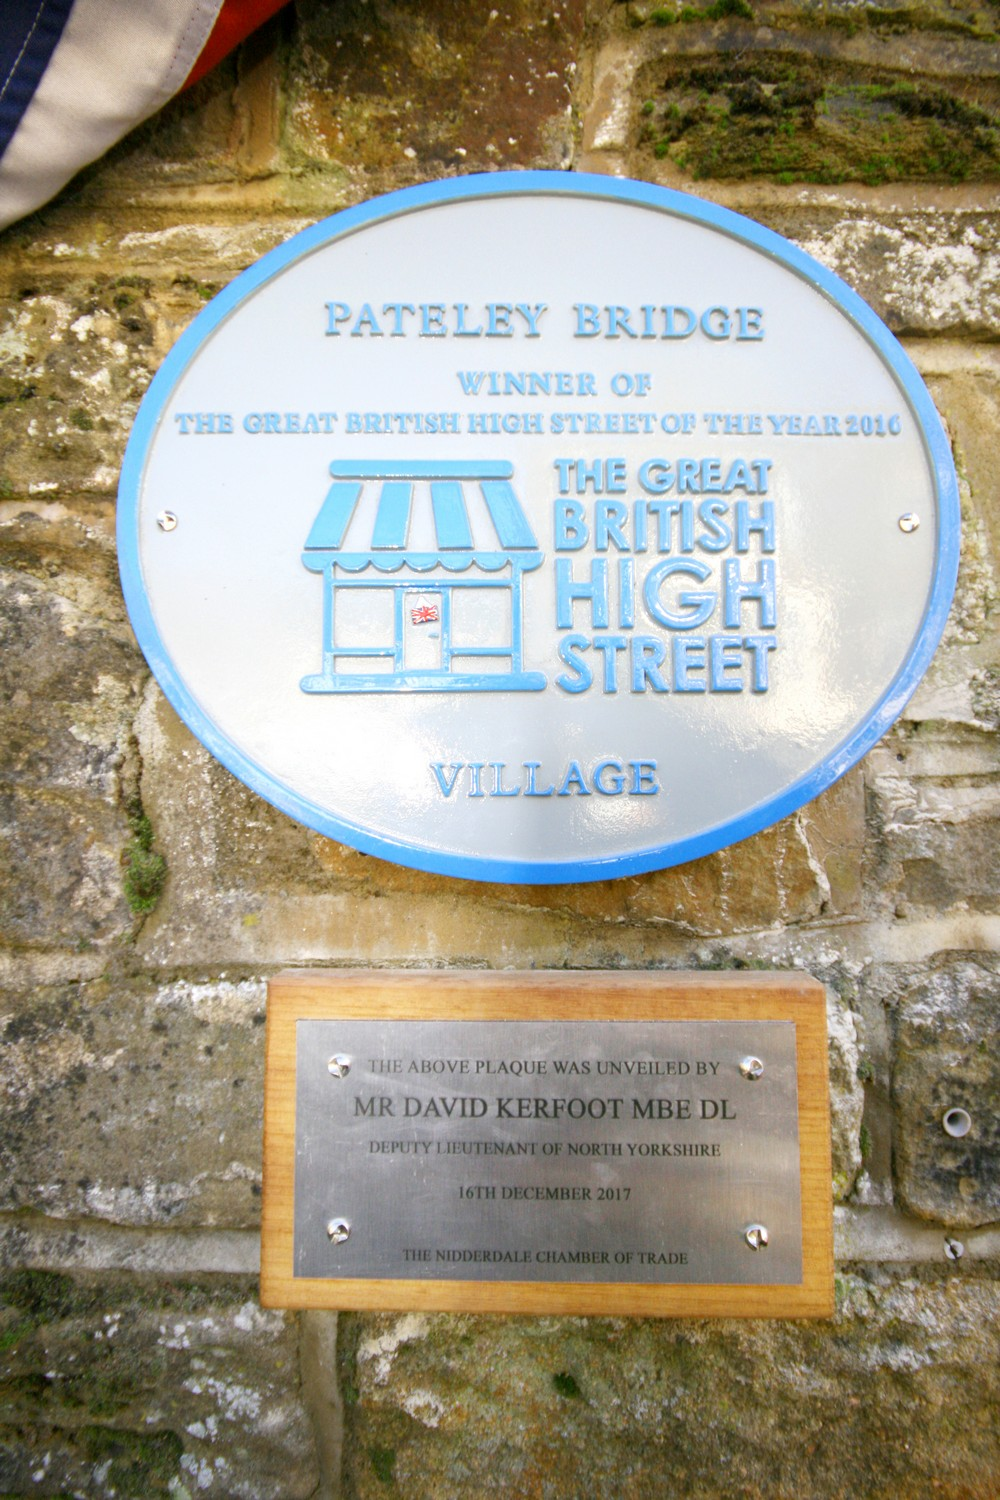 GB High Street Award - Winning Plaque